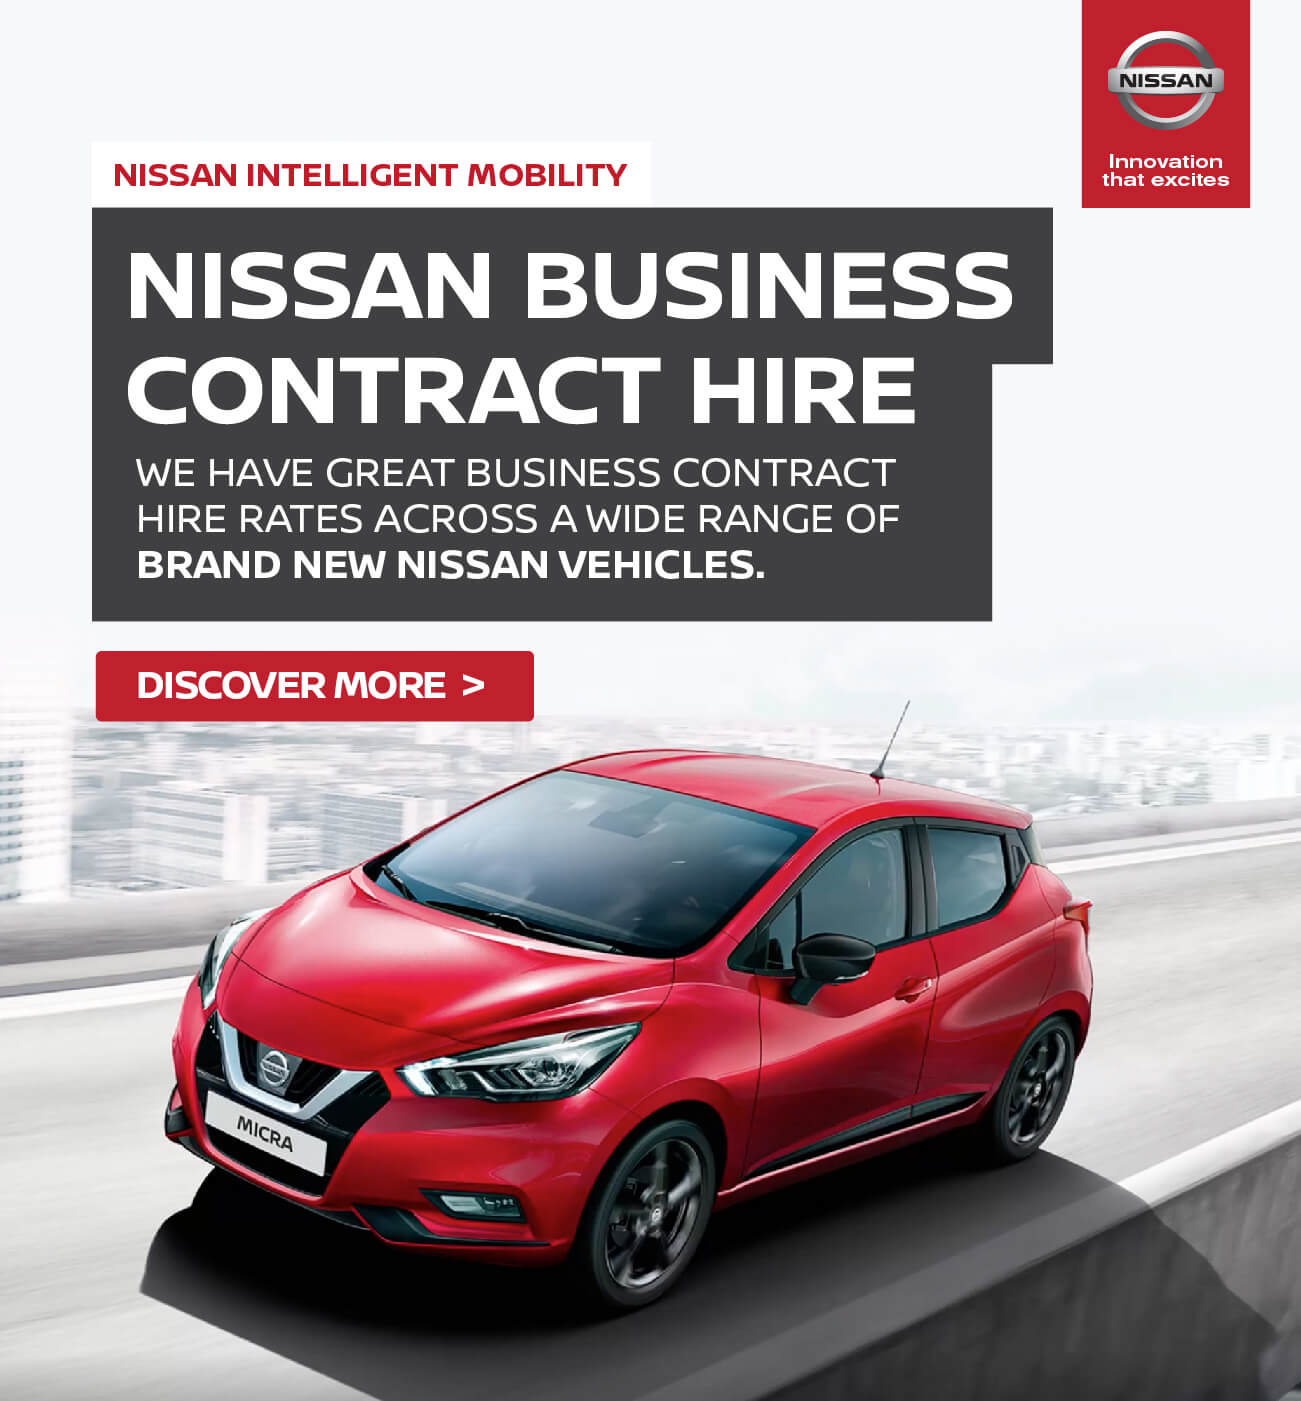 [Nissan Generic] Nissan Contract Hire 010319 Banner 1